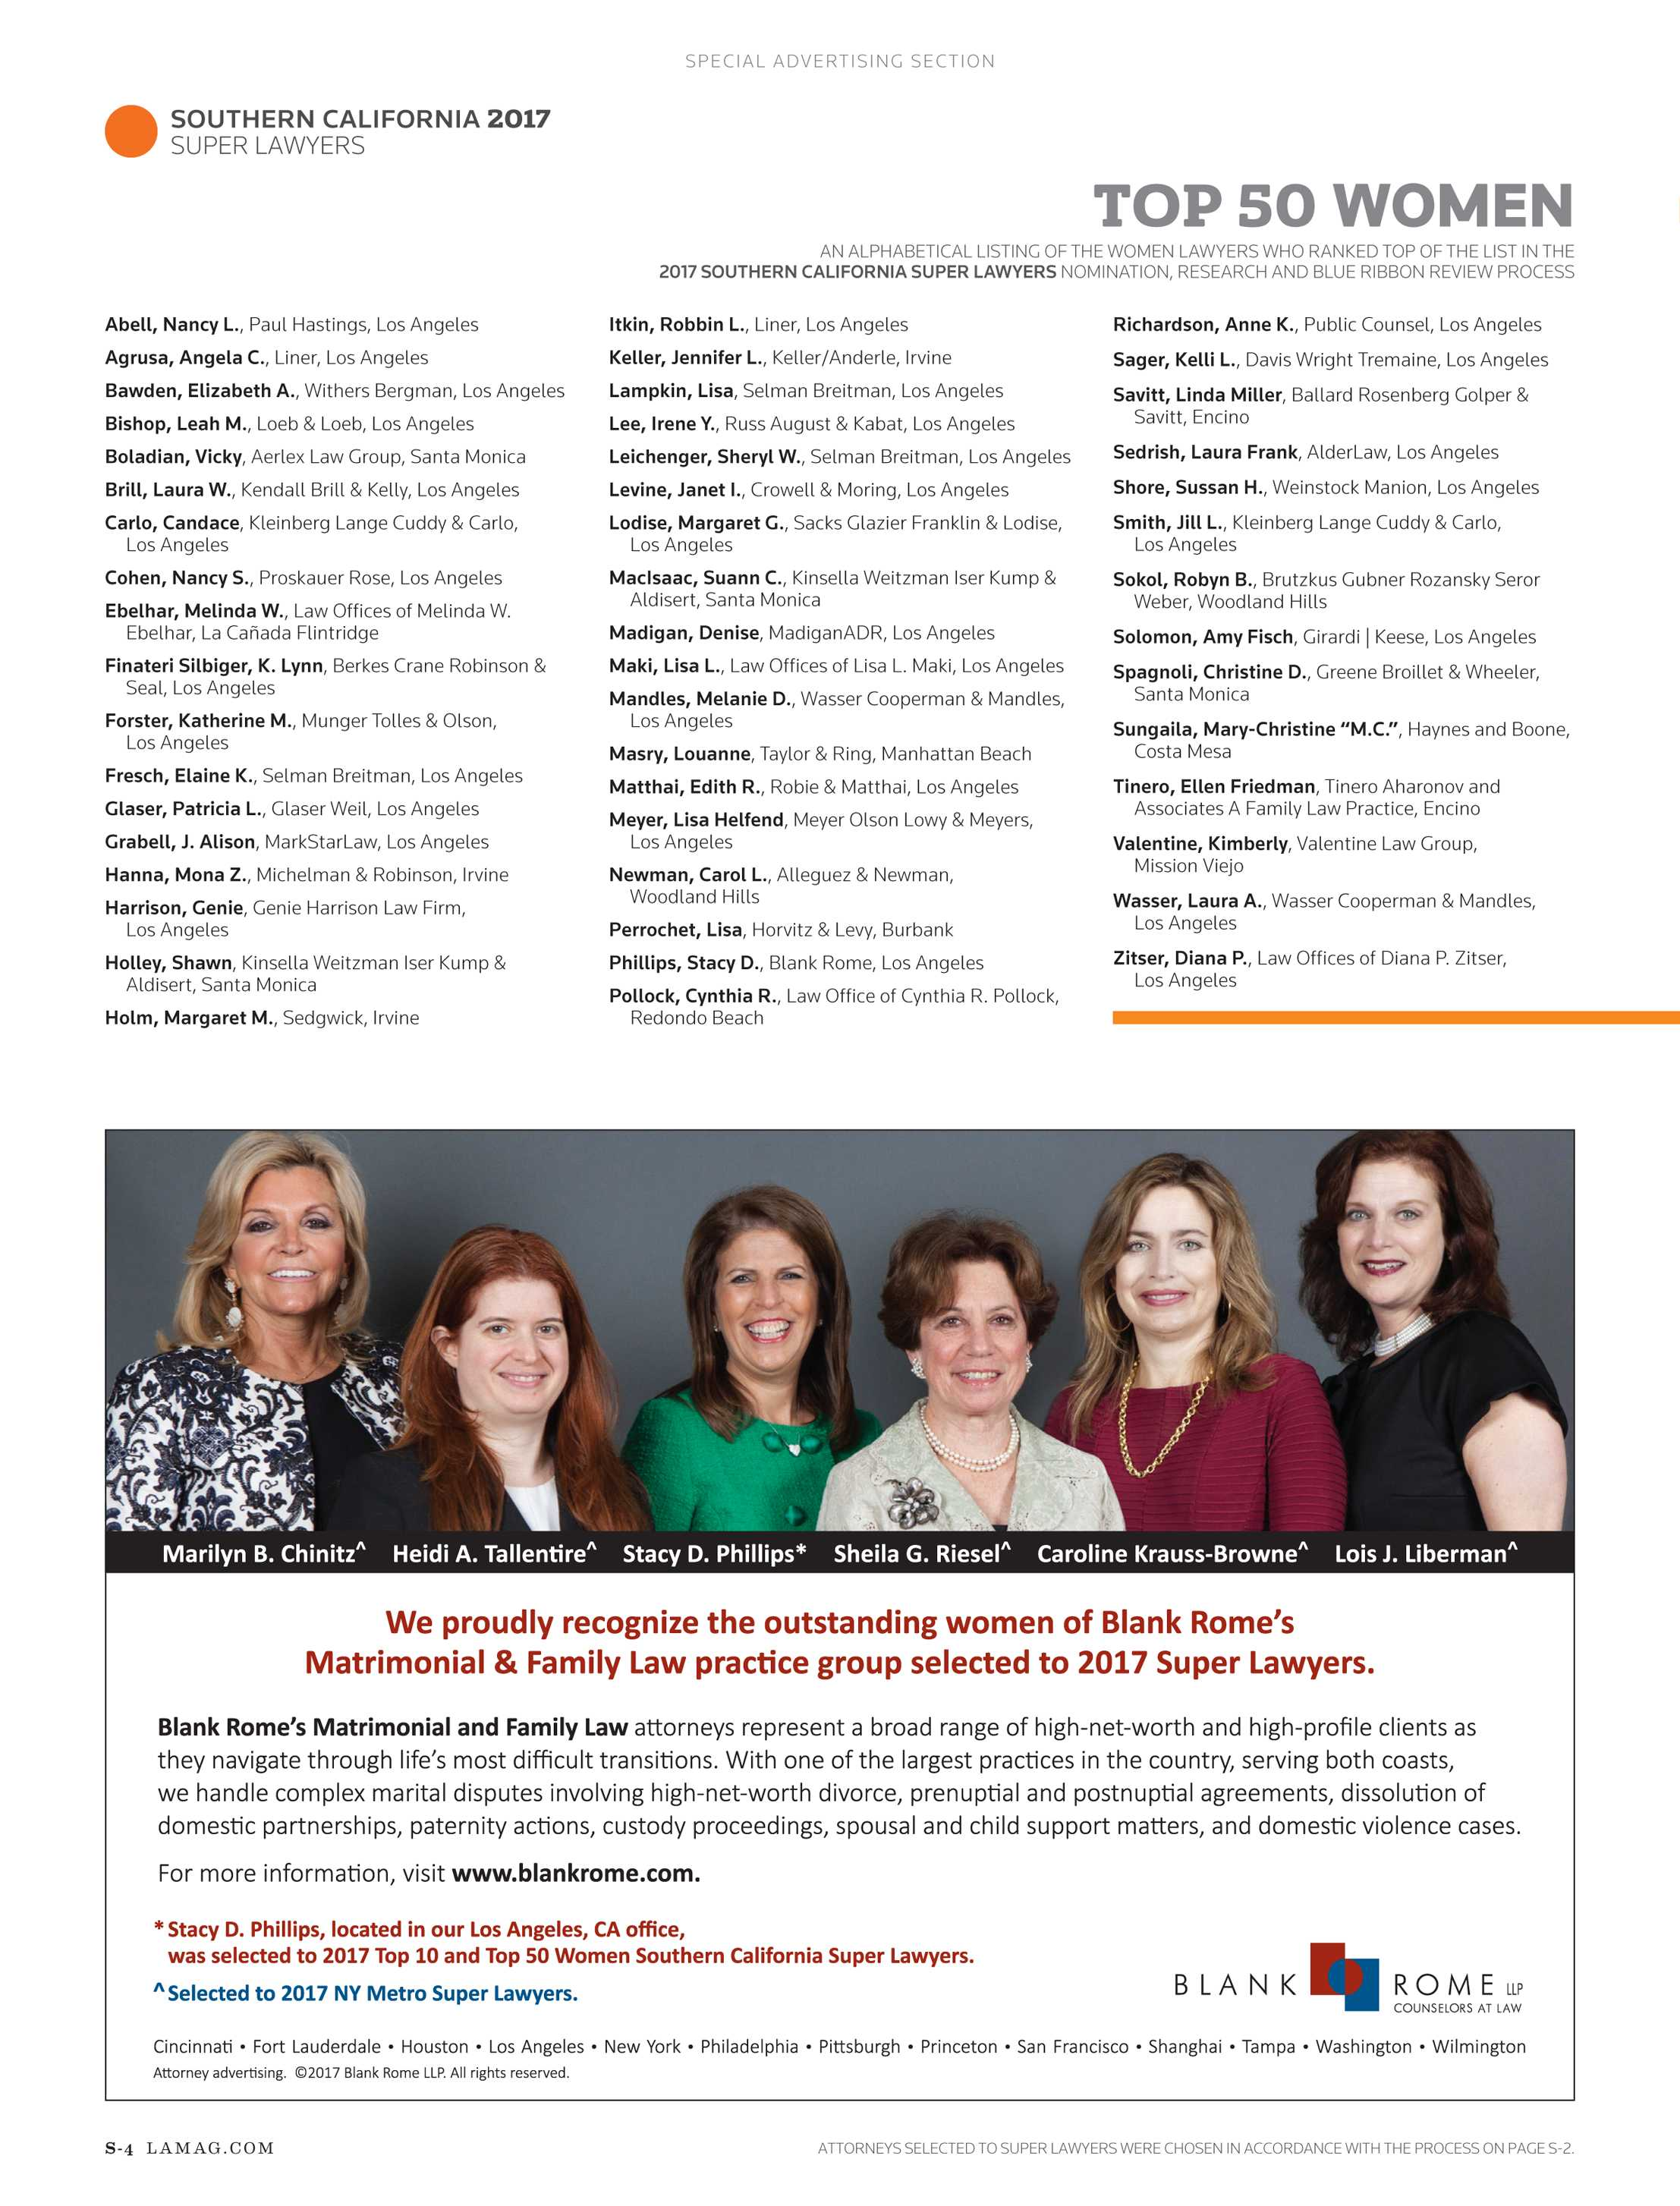 Super Lawyers - The Top Women Attorneys in Southern California 2017